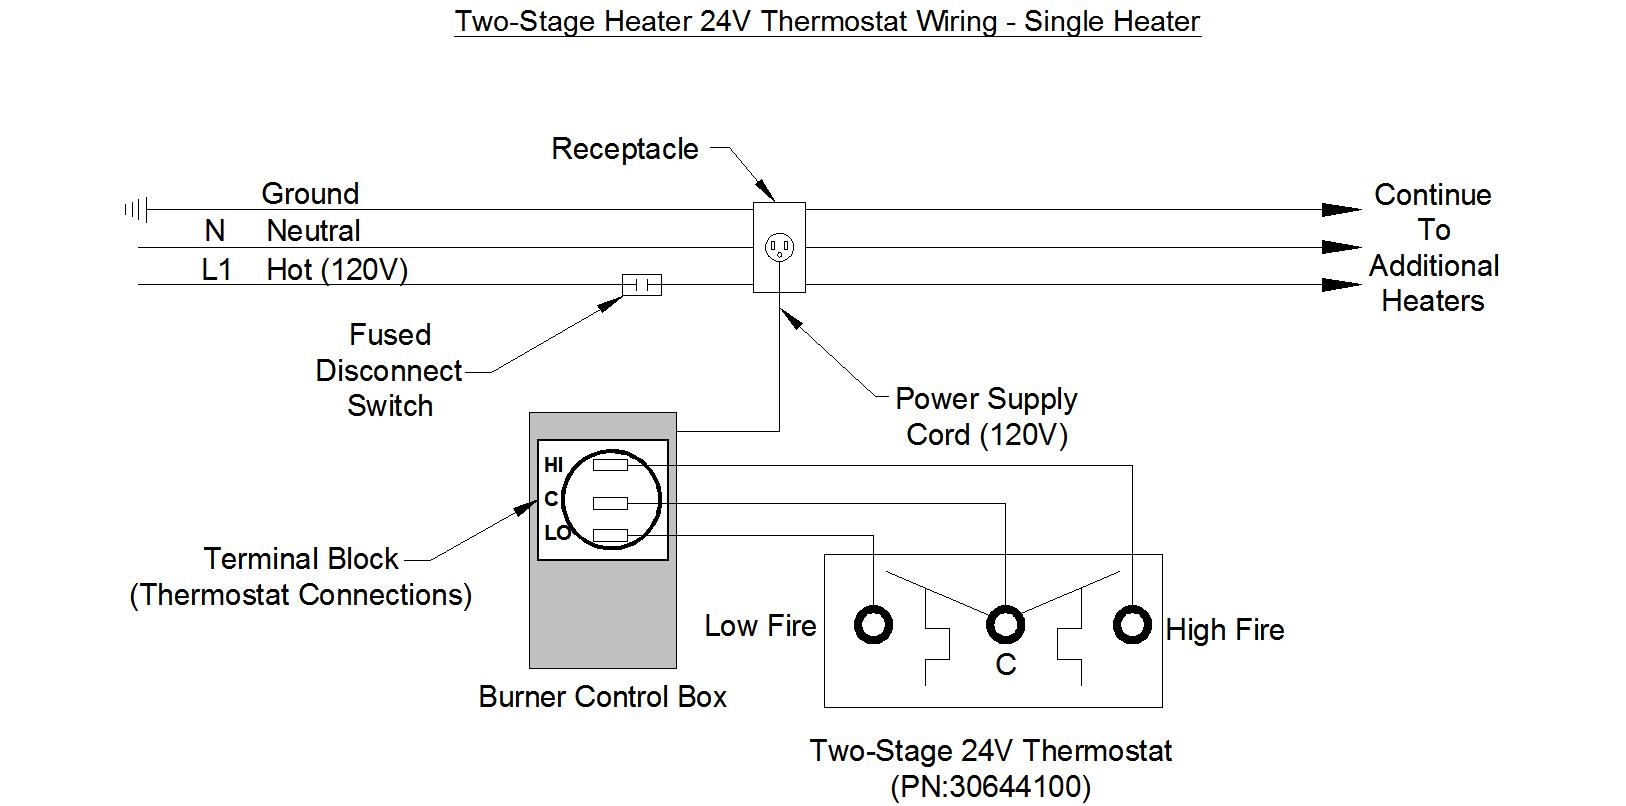 two stage thermostat wiring diagram reading one line electrical autocad library infrared industrial and commercial tube